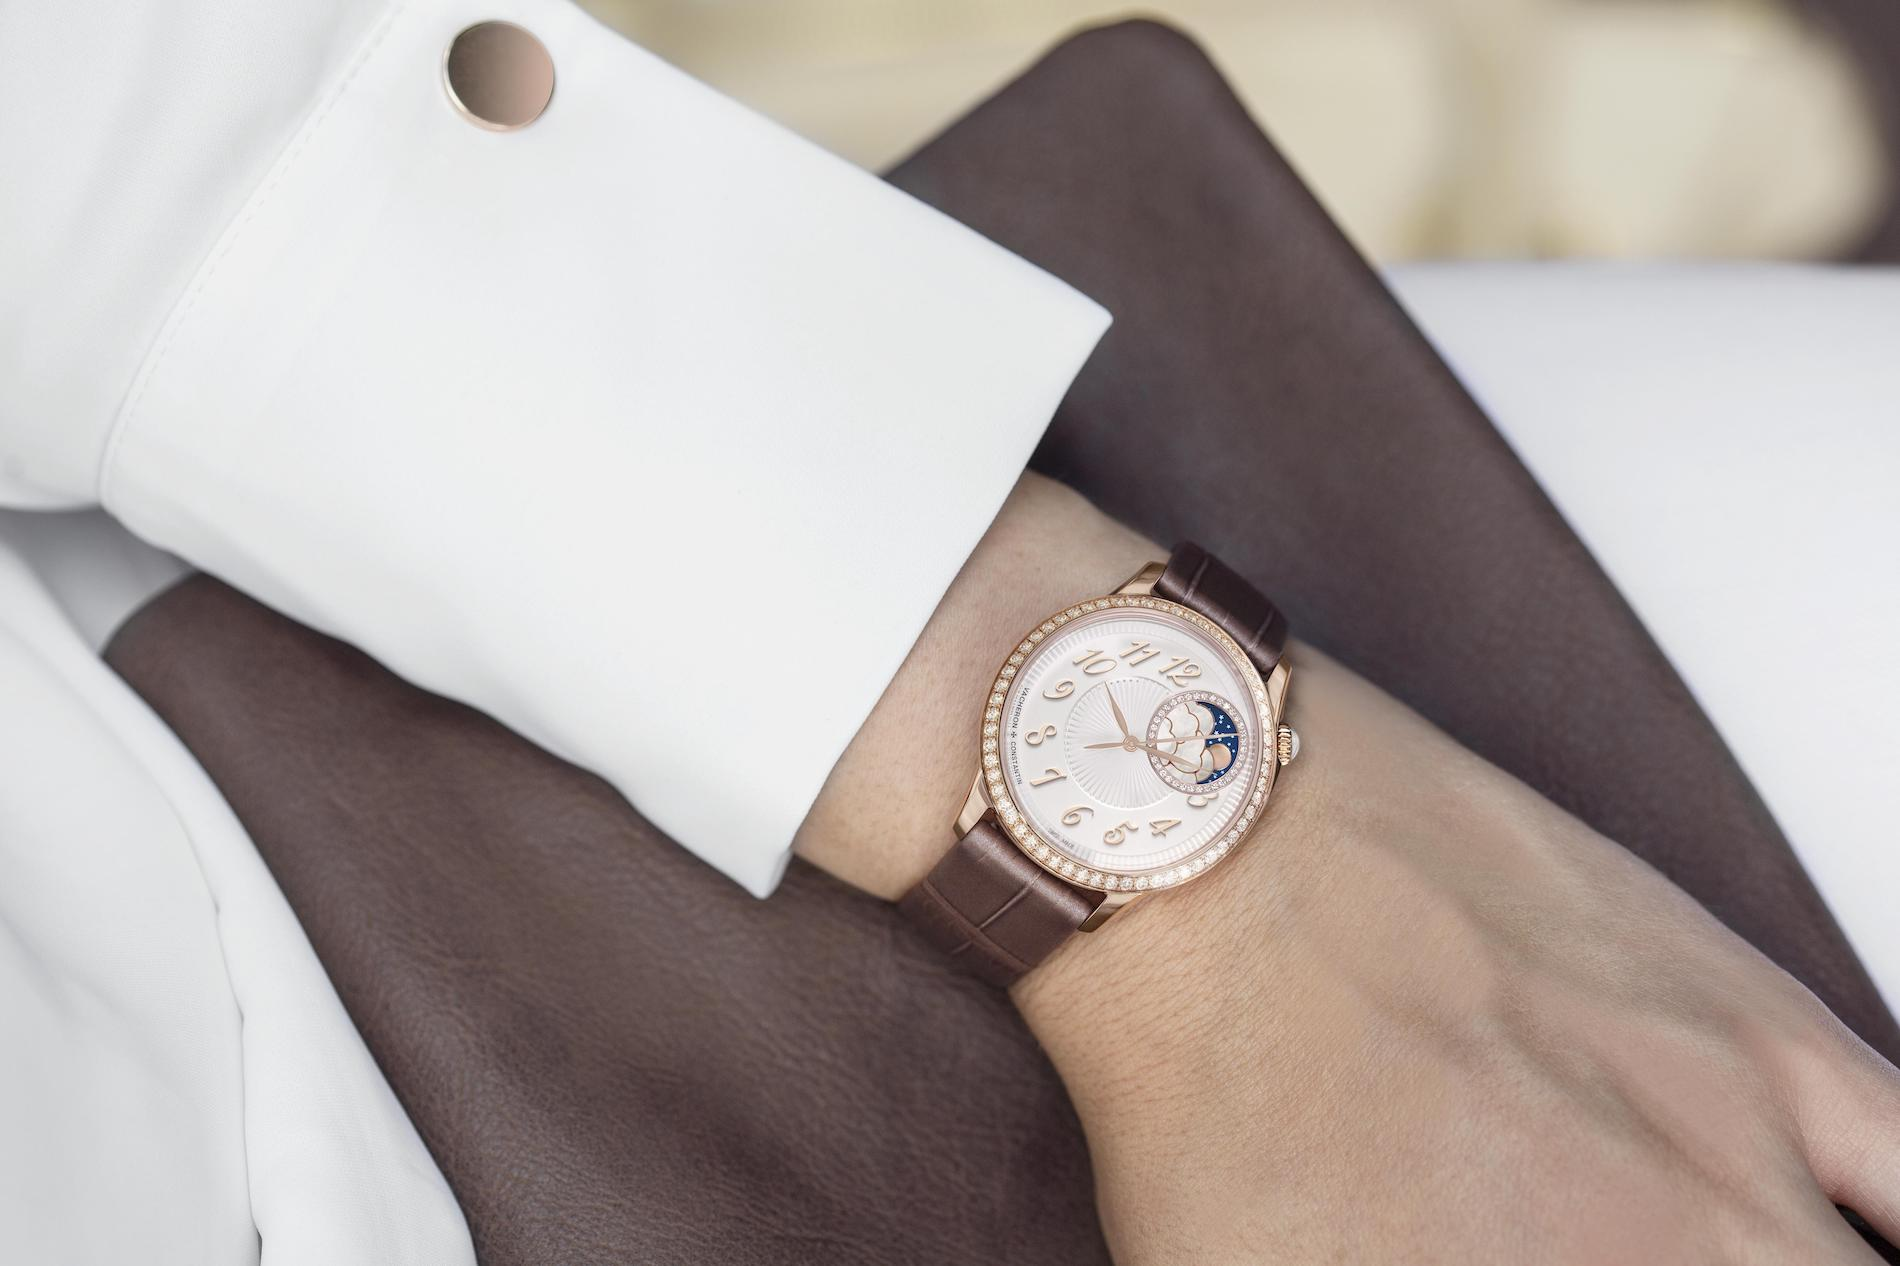 Vacheron Constantin Égérie moon phase timepiece in 18K 5N rose gold with a brown strap on the wrist of a woman.